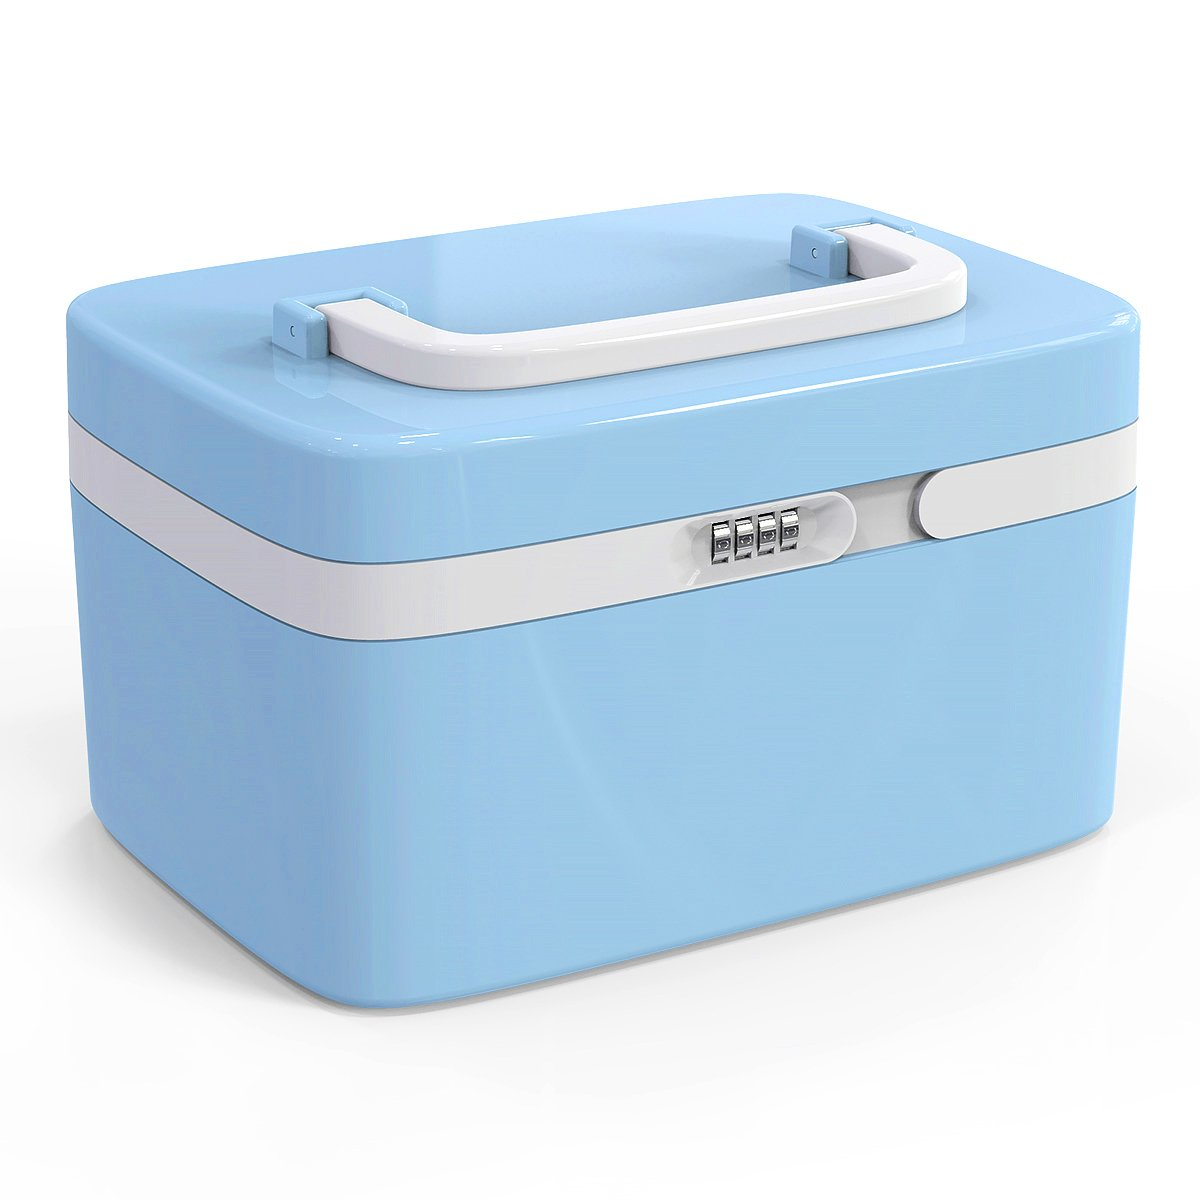 Locking Medicine Box, EVERTOP Household First Aid Kit Multifunctional Storage Box with Separate Compartments,Locking Prescription Pill Case,Child Proof Storage Box (Cyan)